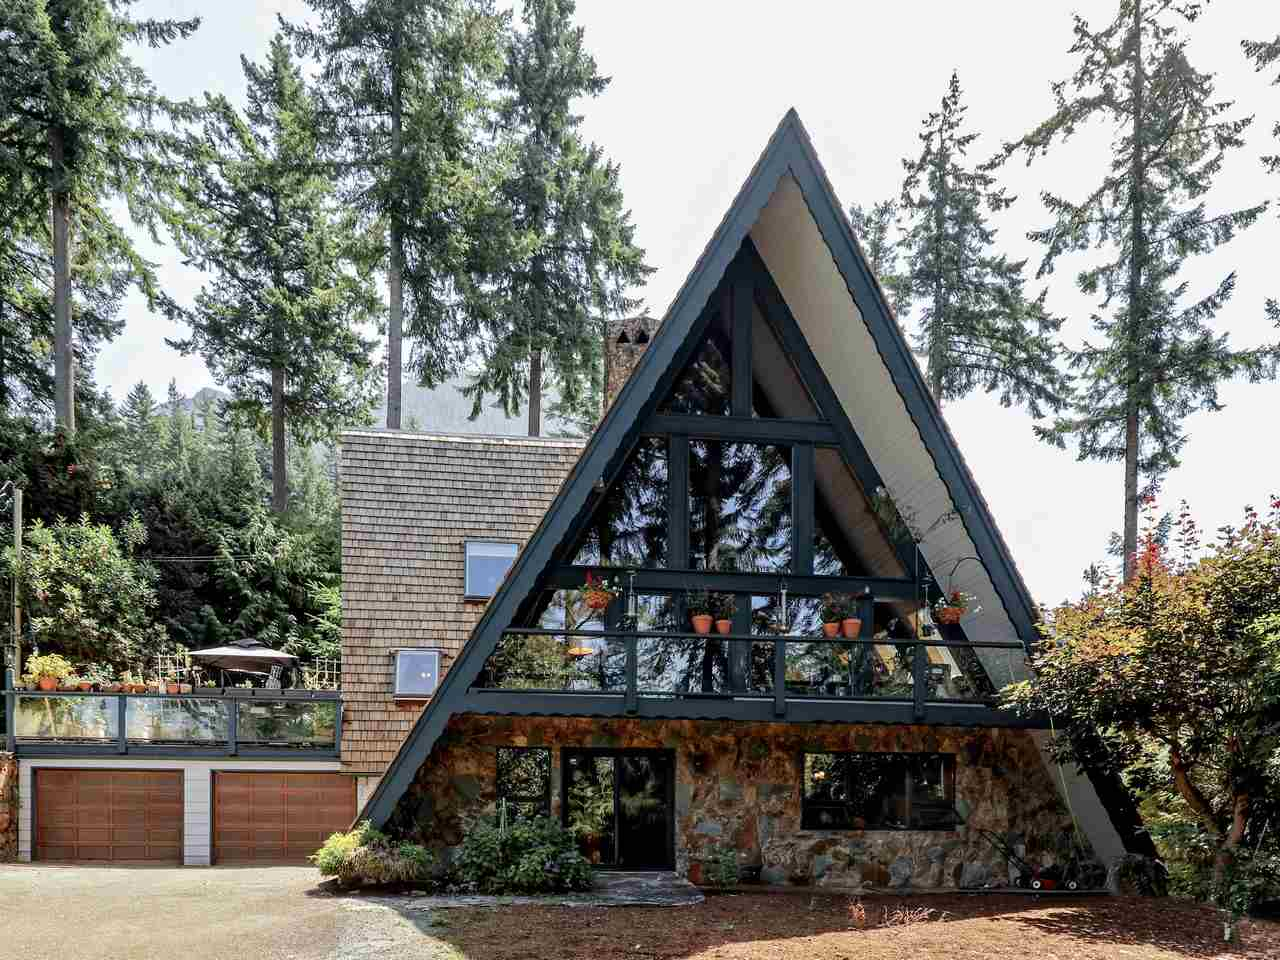 Iconic, quality built & updated A-frame on a park-like 1/2 acre view lot. Featuring 4,800 sq/ft on three levels with 4 bdrms, 3 baths, and oozing the idyllic West Coast architecture that embodied Lions Bay since its inception. This 2 owner home was proudly constructed by the original owner/builder w/ massive hand-hewn wood beams, high vaulted ceilings, & a soaring custom stone fp. The current owner has lovingly updated the house while maintaining the original charm. Features of the renovations incl a new kitchen (w/ Thermador appliances), new bathrooms, new hardwood and tile floors, new propane furnace, new roof and skylights, & new 200 amp service. Situated on a private 25,000 sq/ft lot with ocean & island views, and with rarely available level yard great for families or pets.